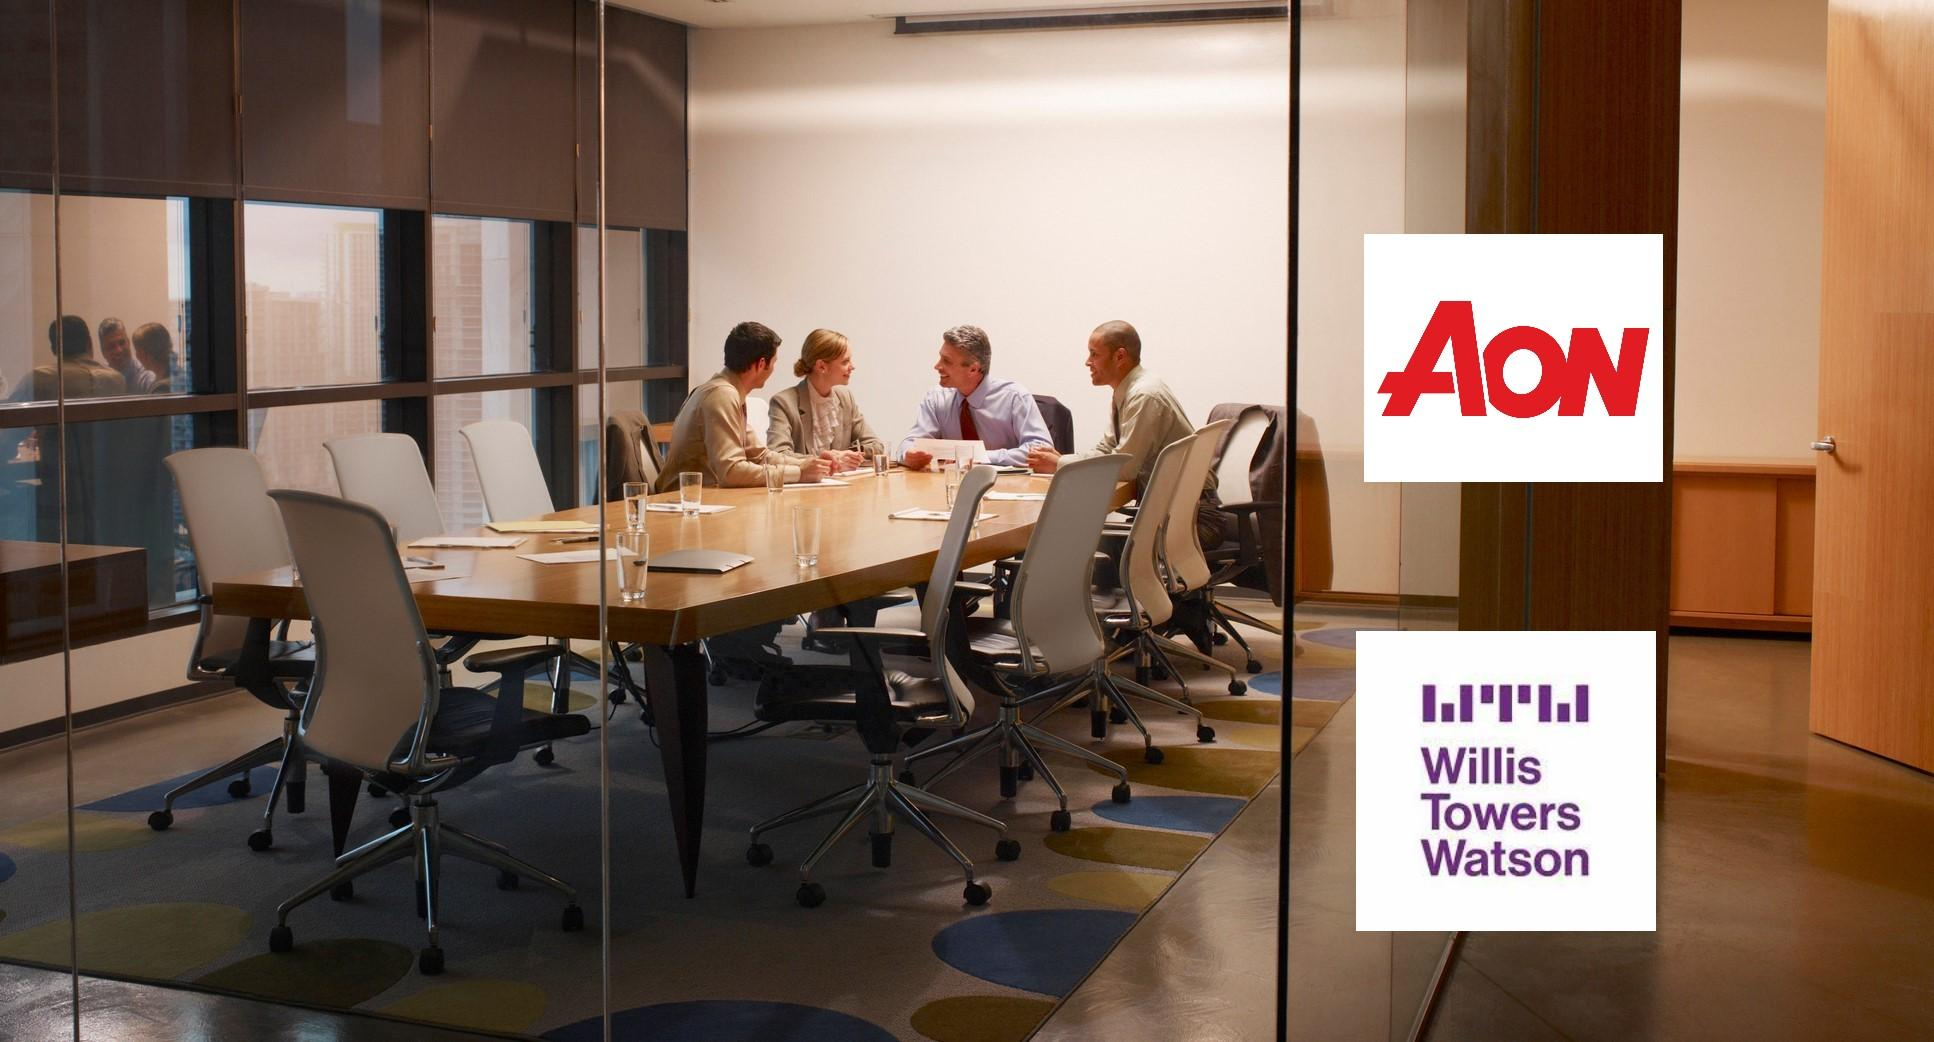 Aon Willis Towers Watson logos over deal meeting